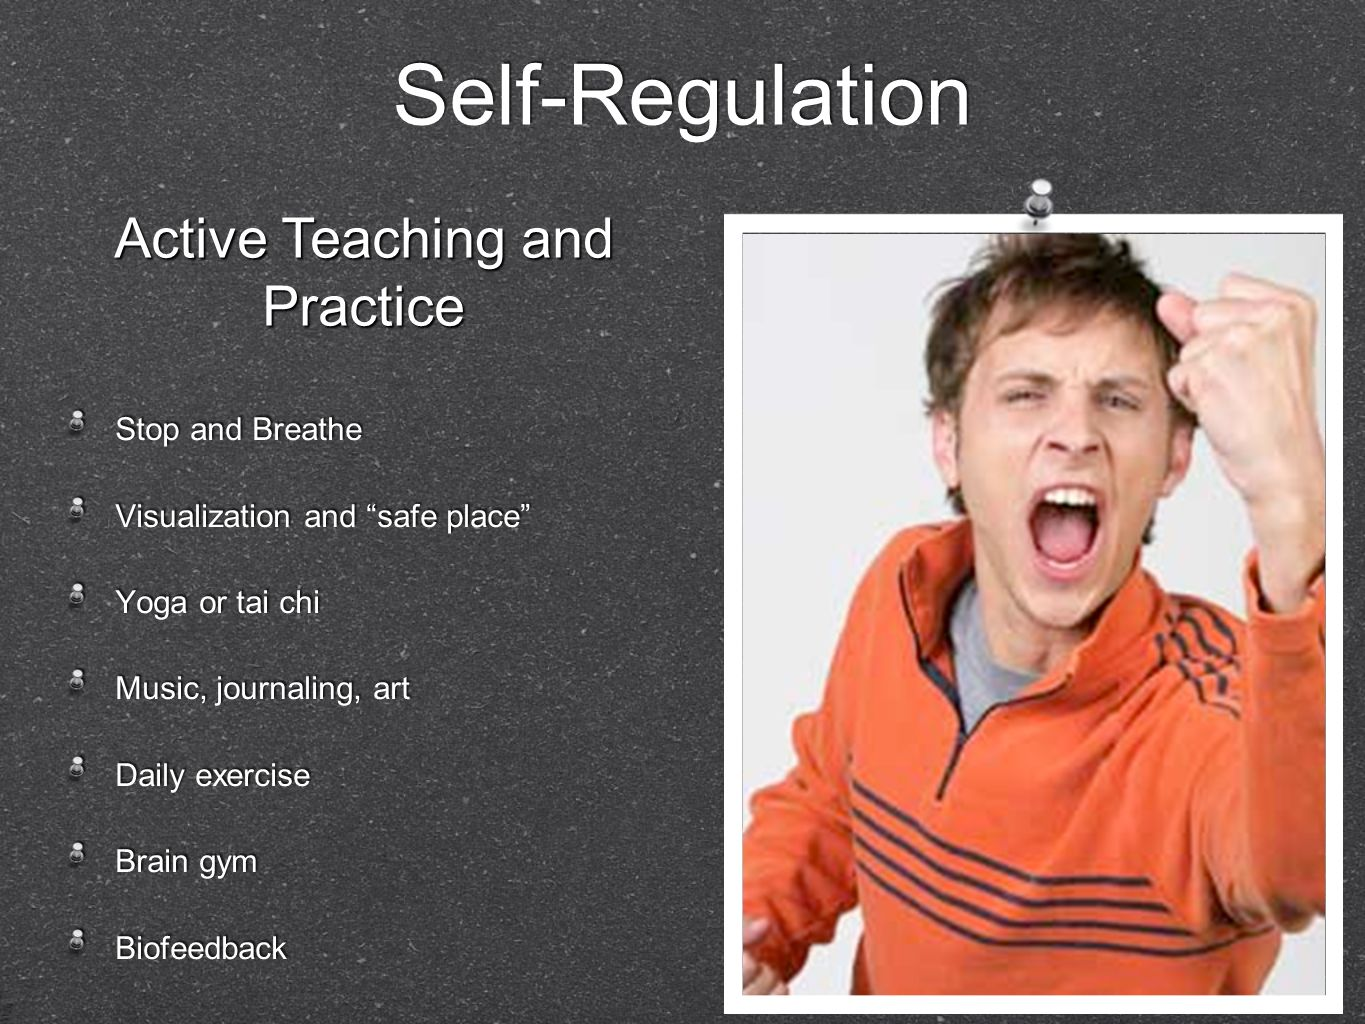 Active Teaching and Practice